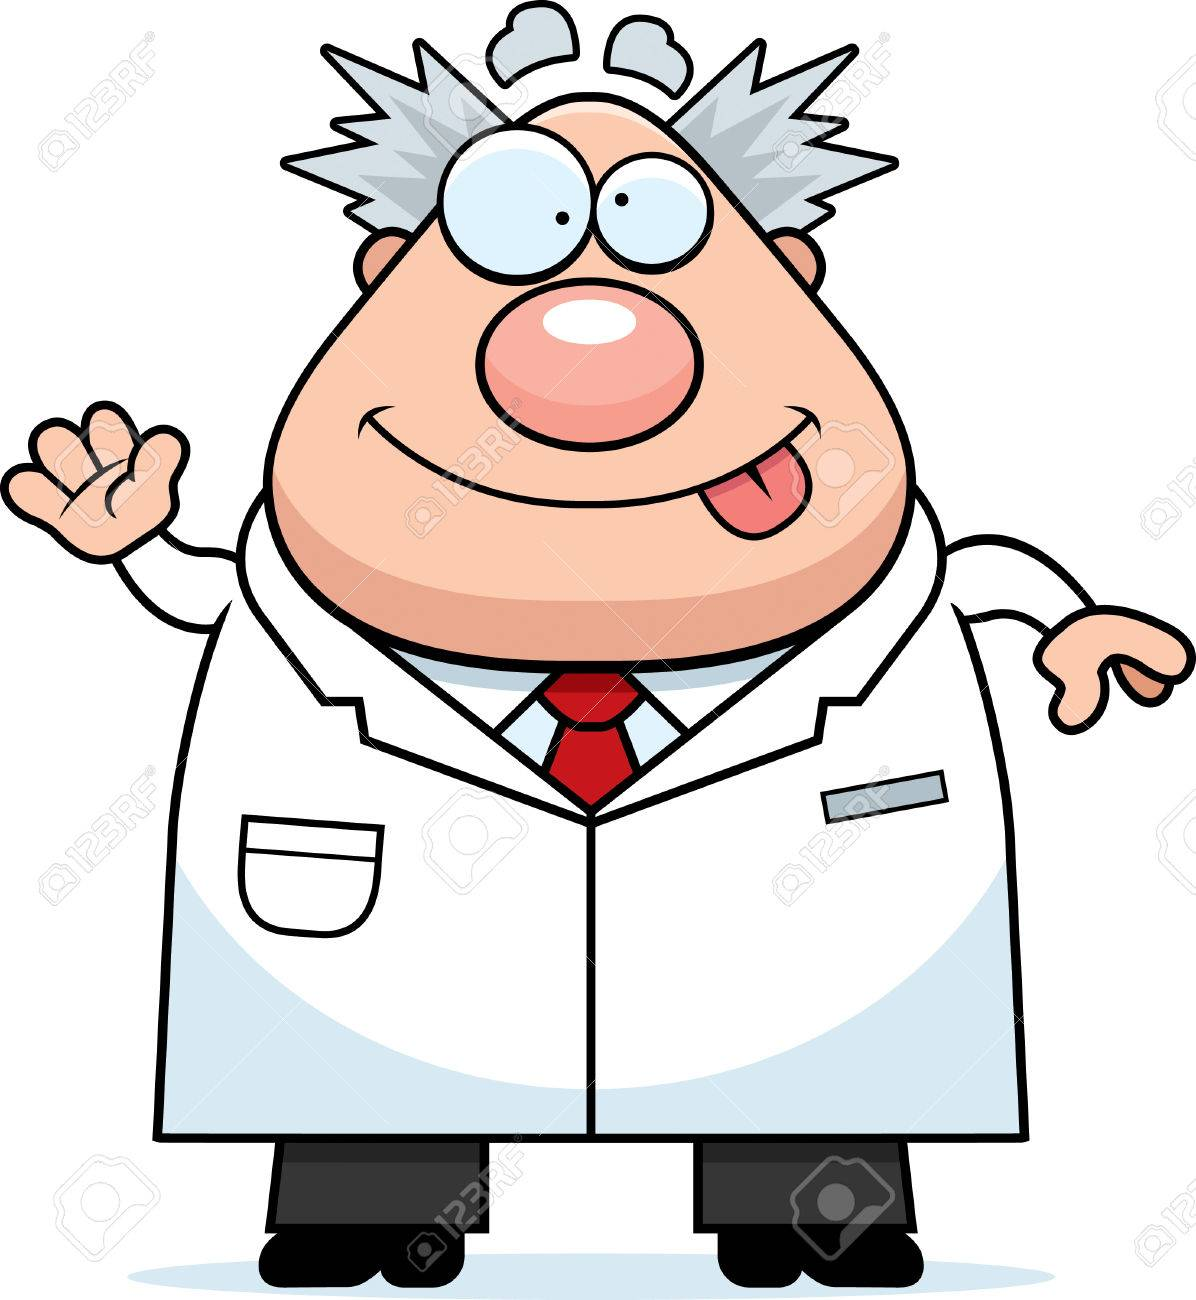 a cartoon illustration of a mad scientist waving royalty free rh 123rf com mad science clipart mad scientist clipart images